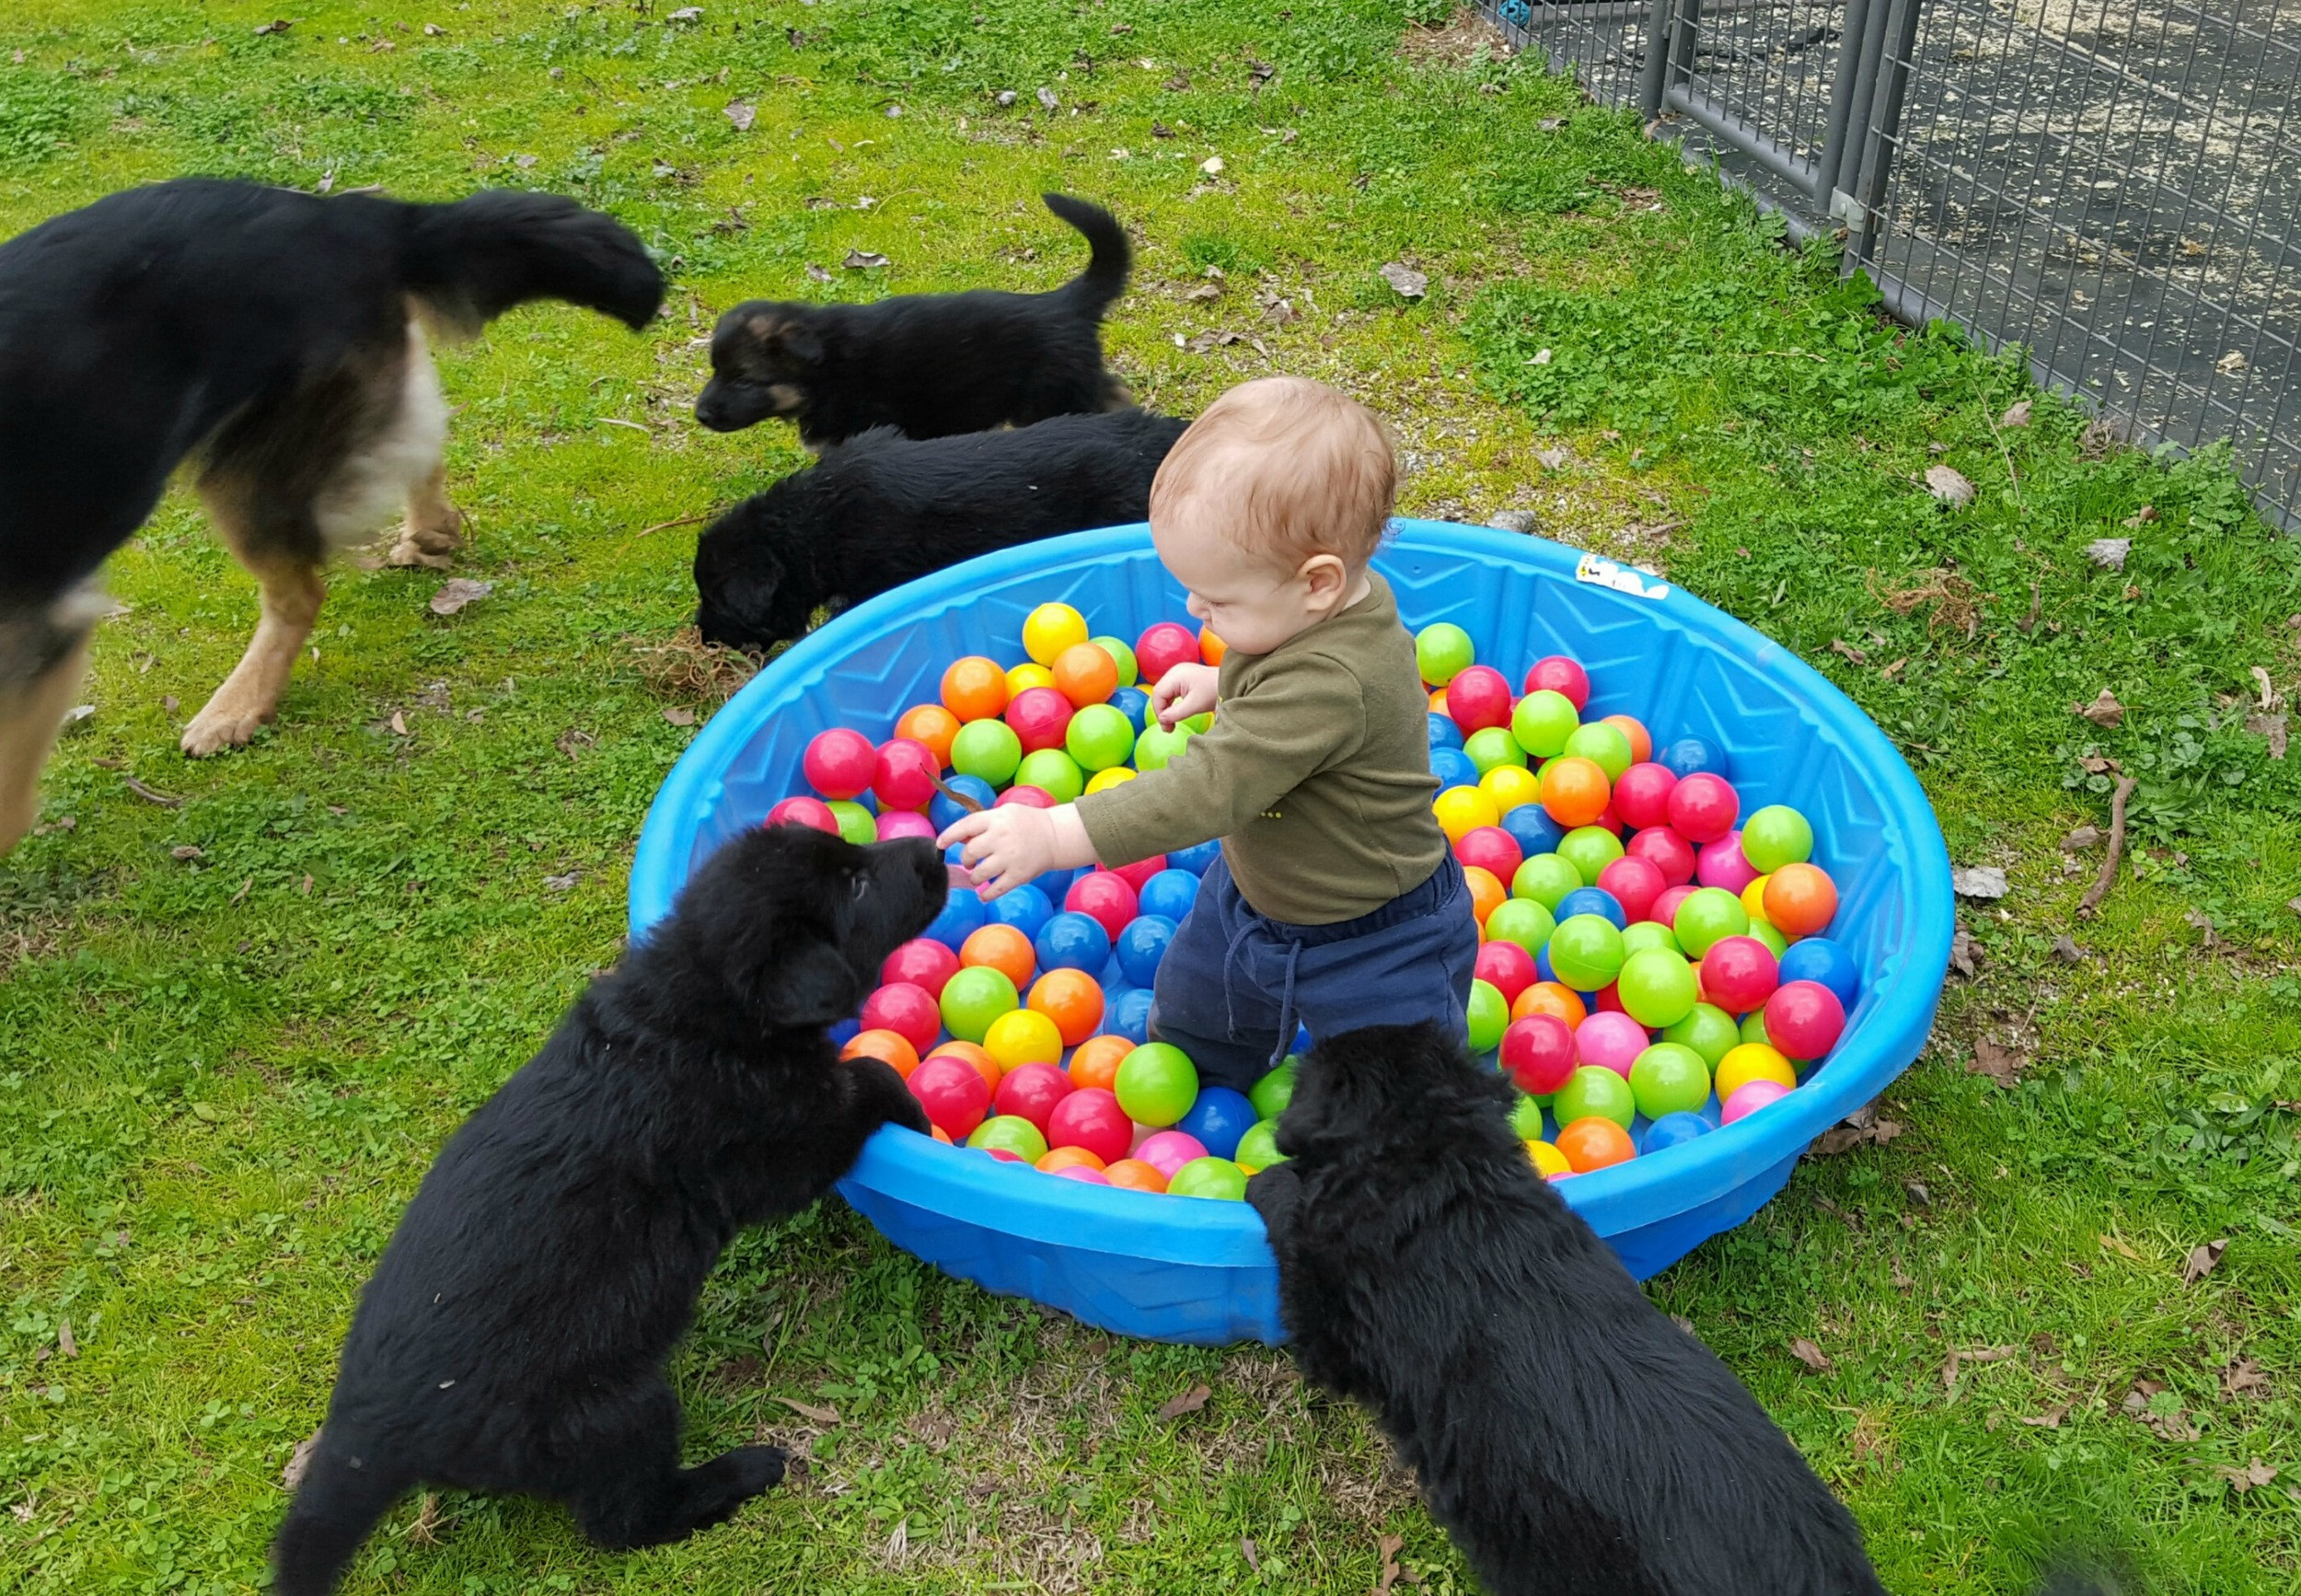 The pool with balls instead of bottles...and a baby :)